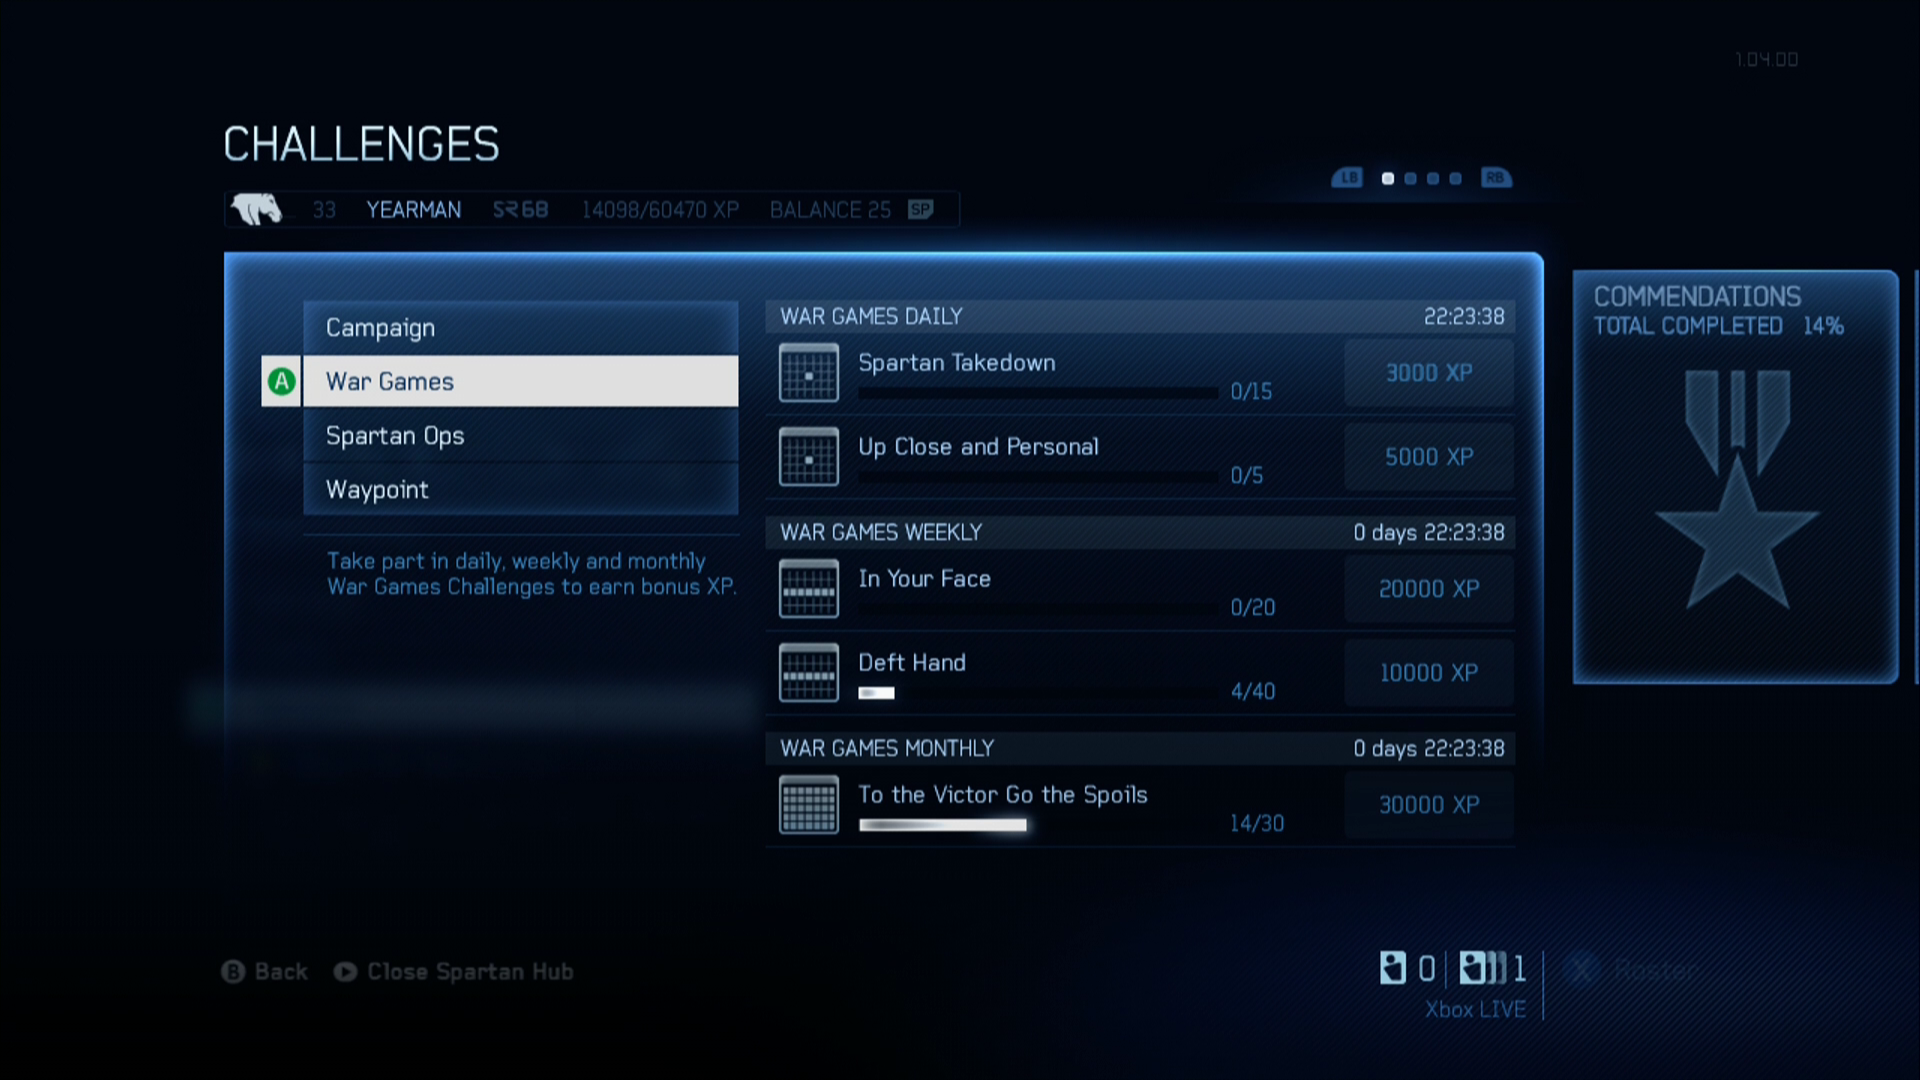 Halo 4 Xbox 360 The game also features a challenge system like <i>Halo: Reach</i>.